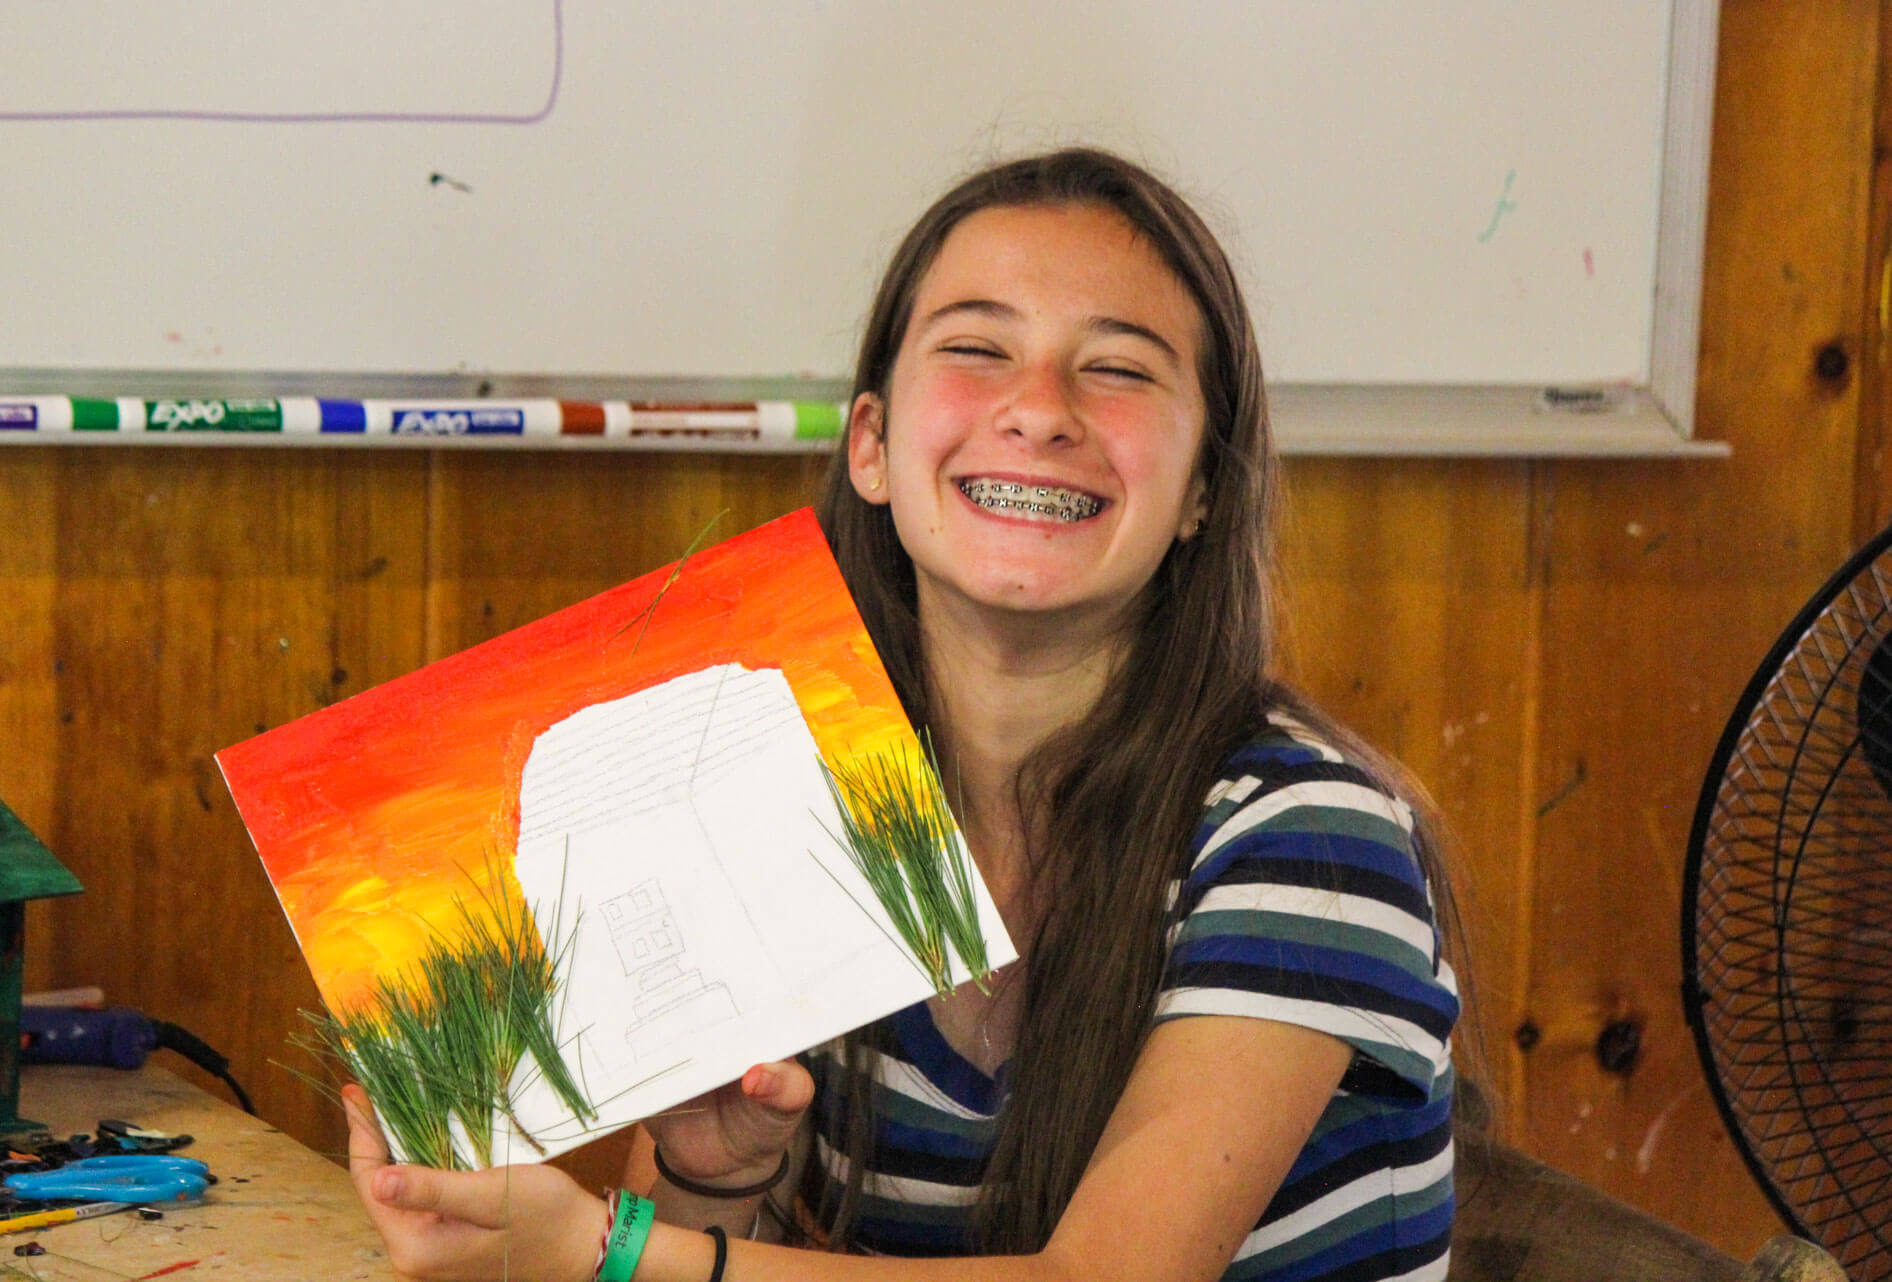 Smiling camper holds up painting